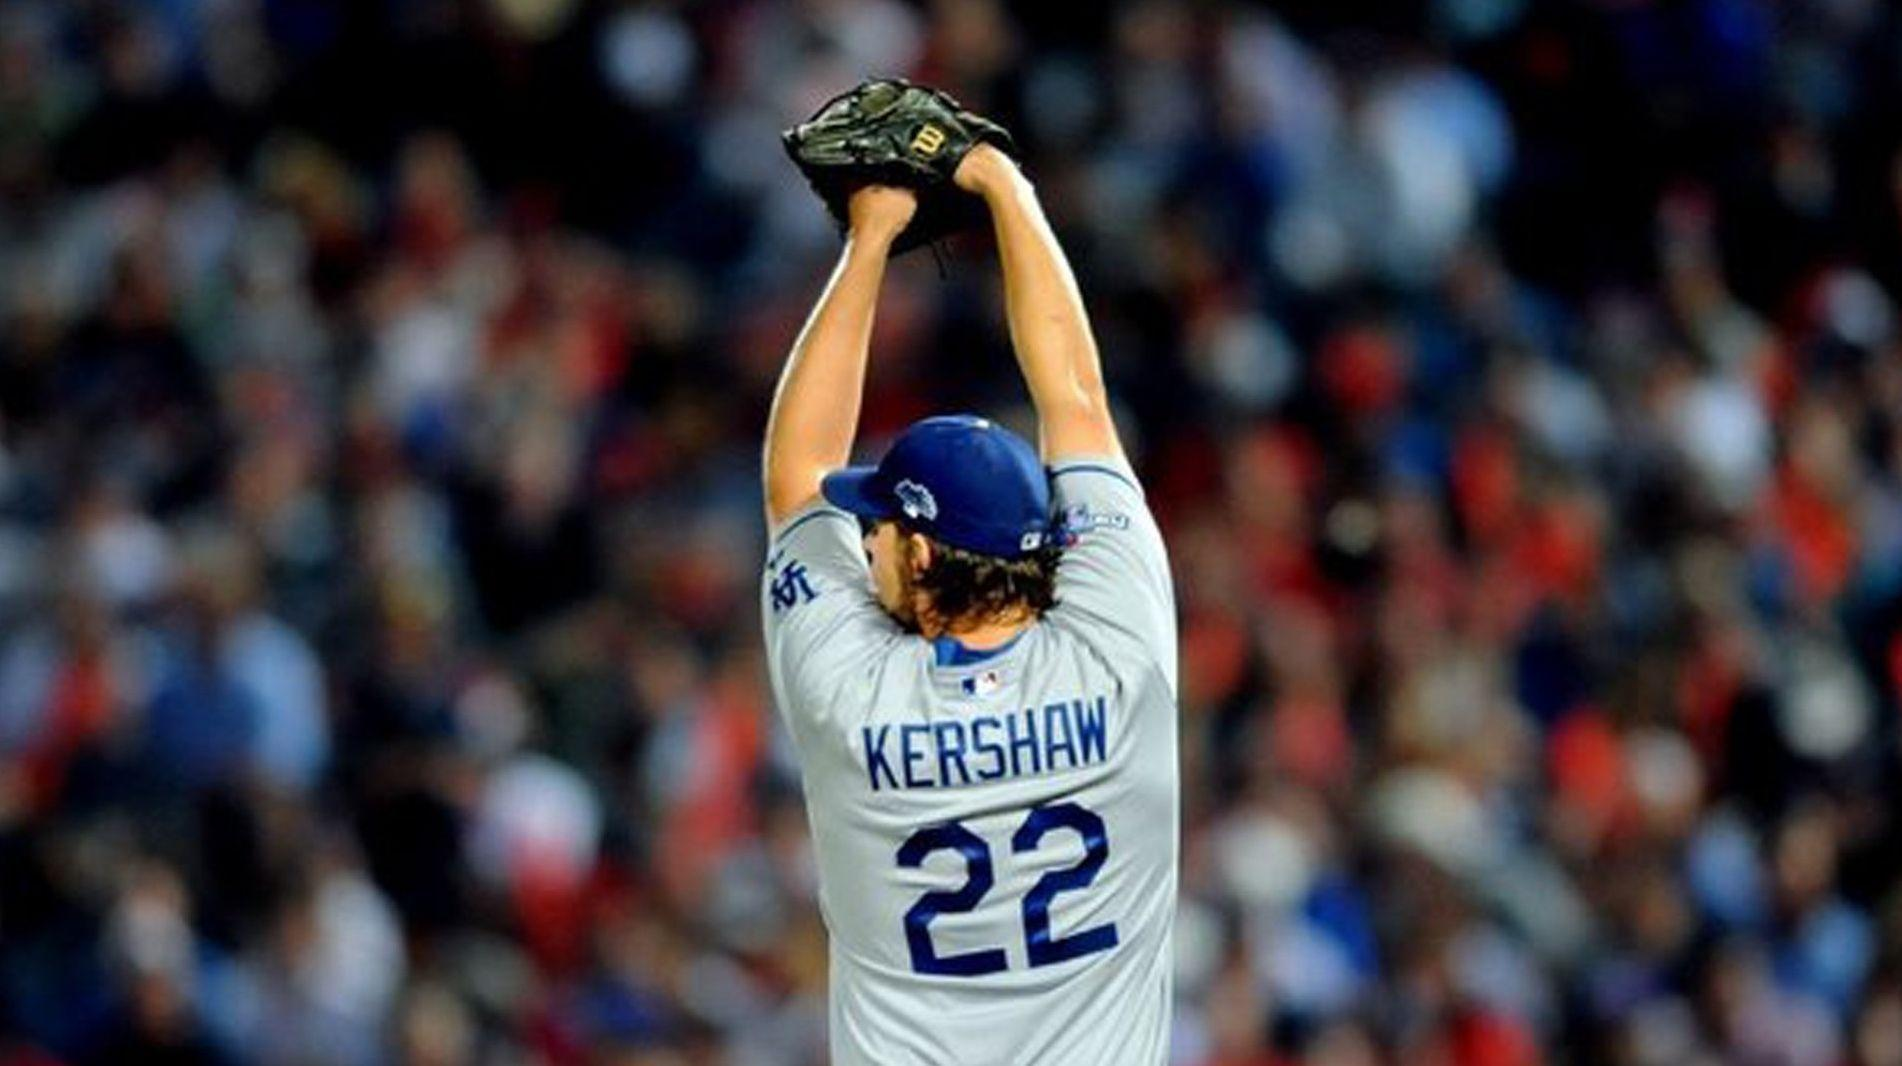 Clayton Kershaw Photo Wallpapers for Dekstop Computer Backgrounds